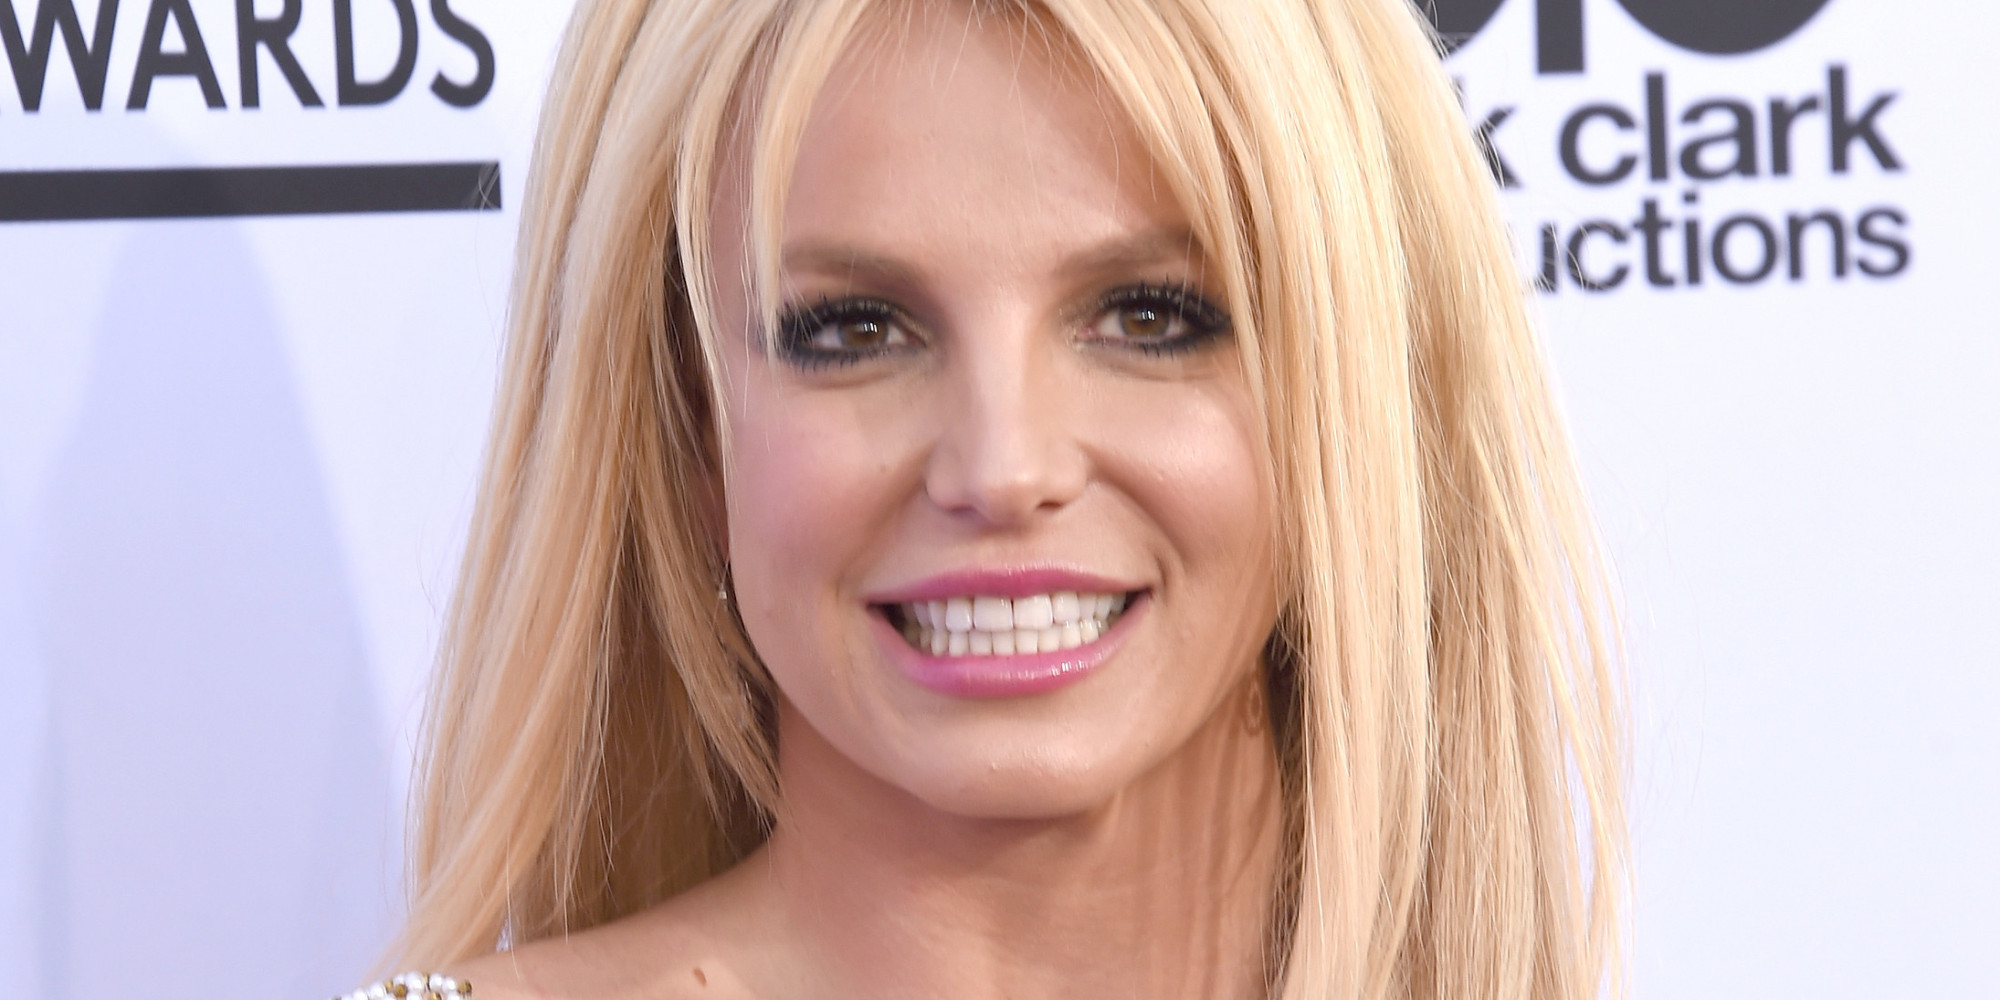 Imagenes Britney Spears: Britney Spears' Instagram Account May Prove She's